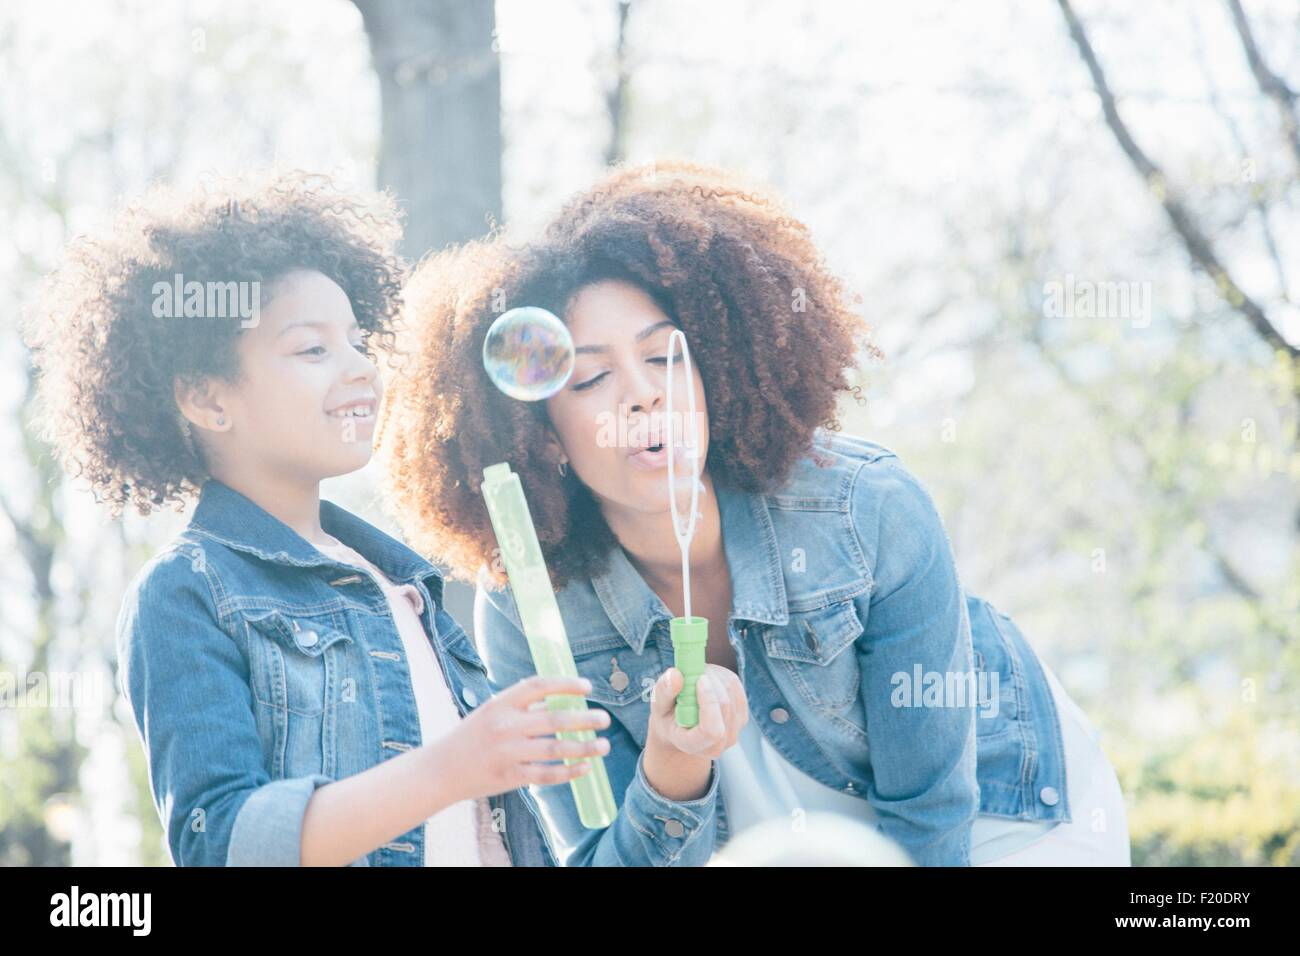 Mother and daughter blowing bubbles together Stock Photo